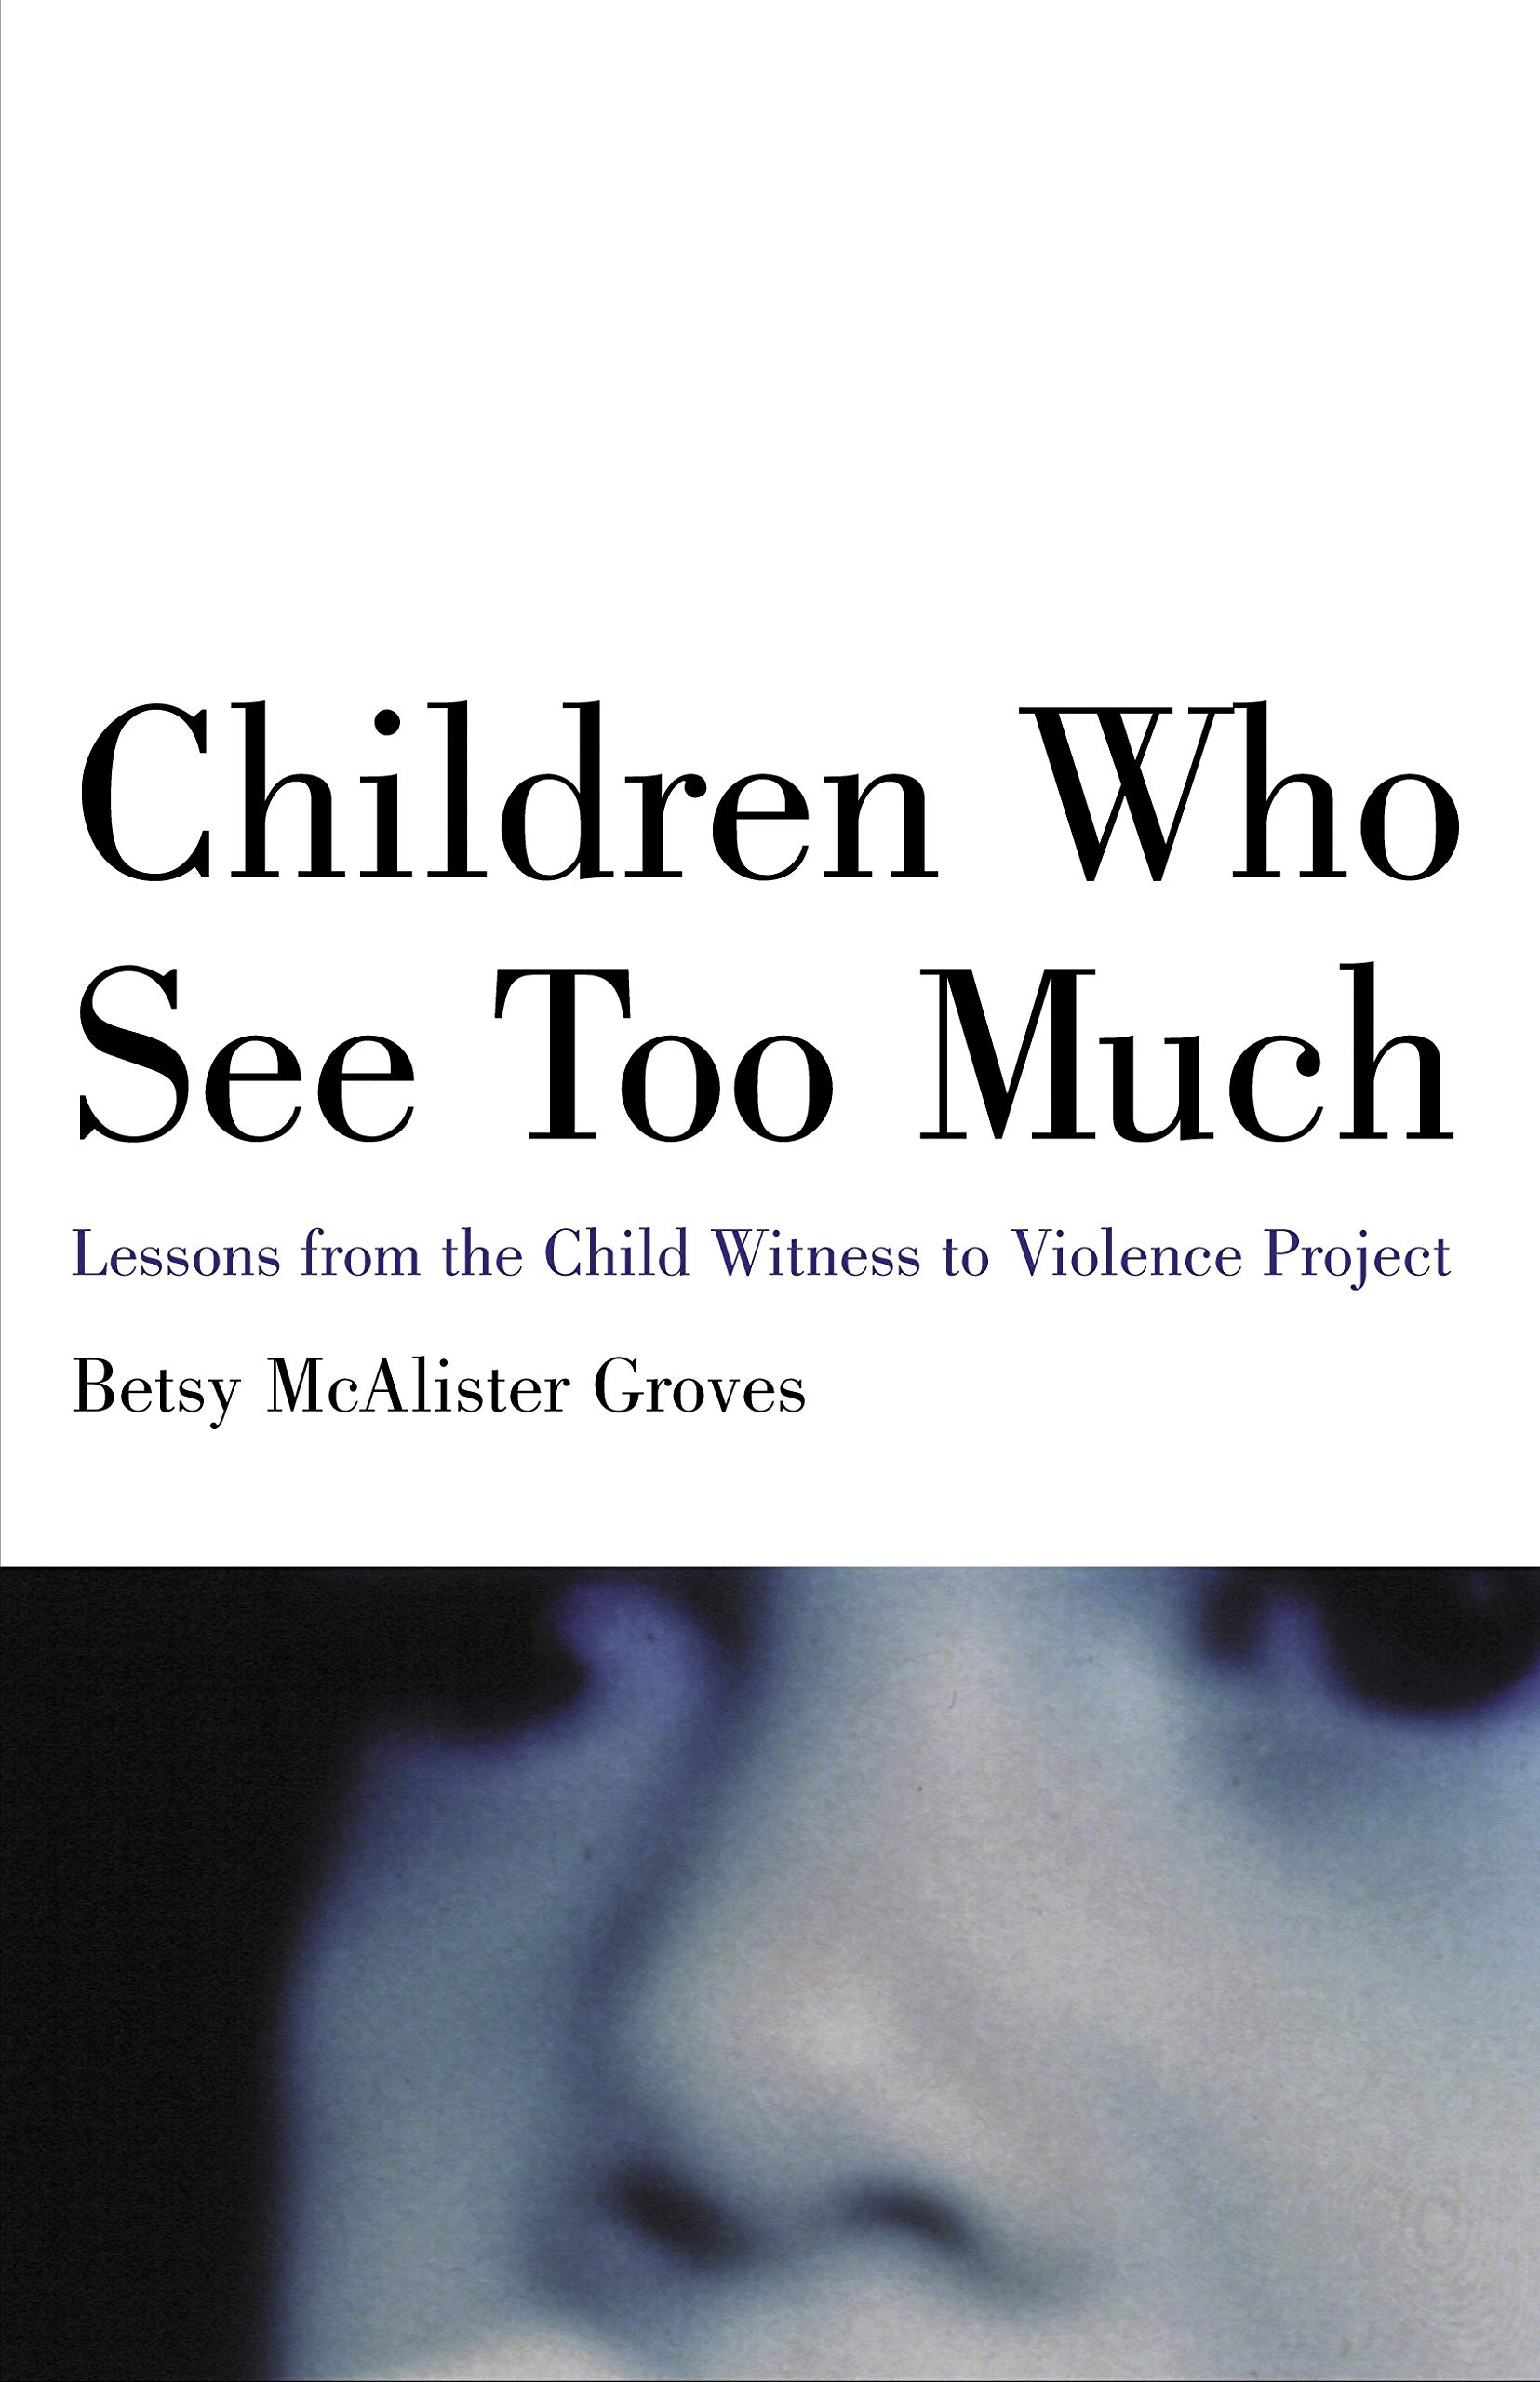 Children Who See Too Much: Lessons from the Child Witness to Violence Project